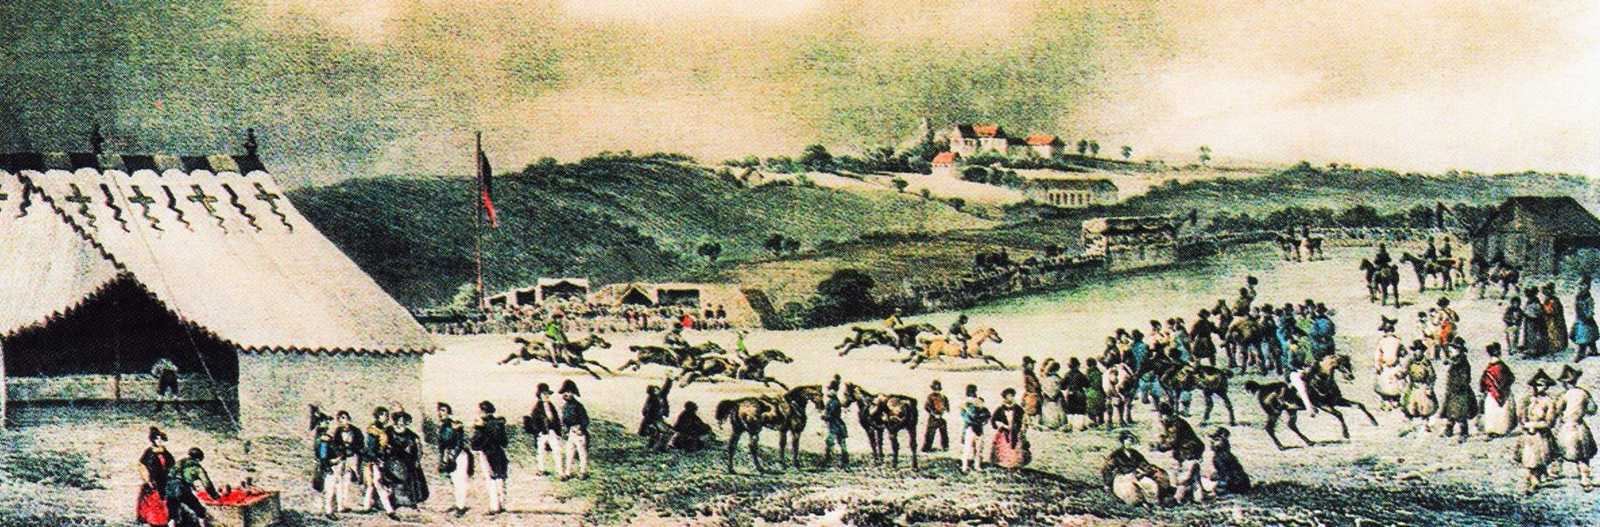 Horse racing on Deadwood Plain, 1821 {3}